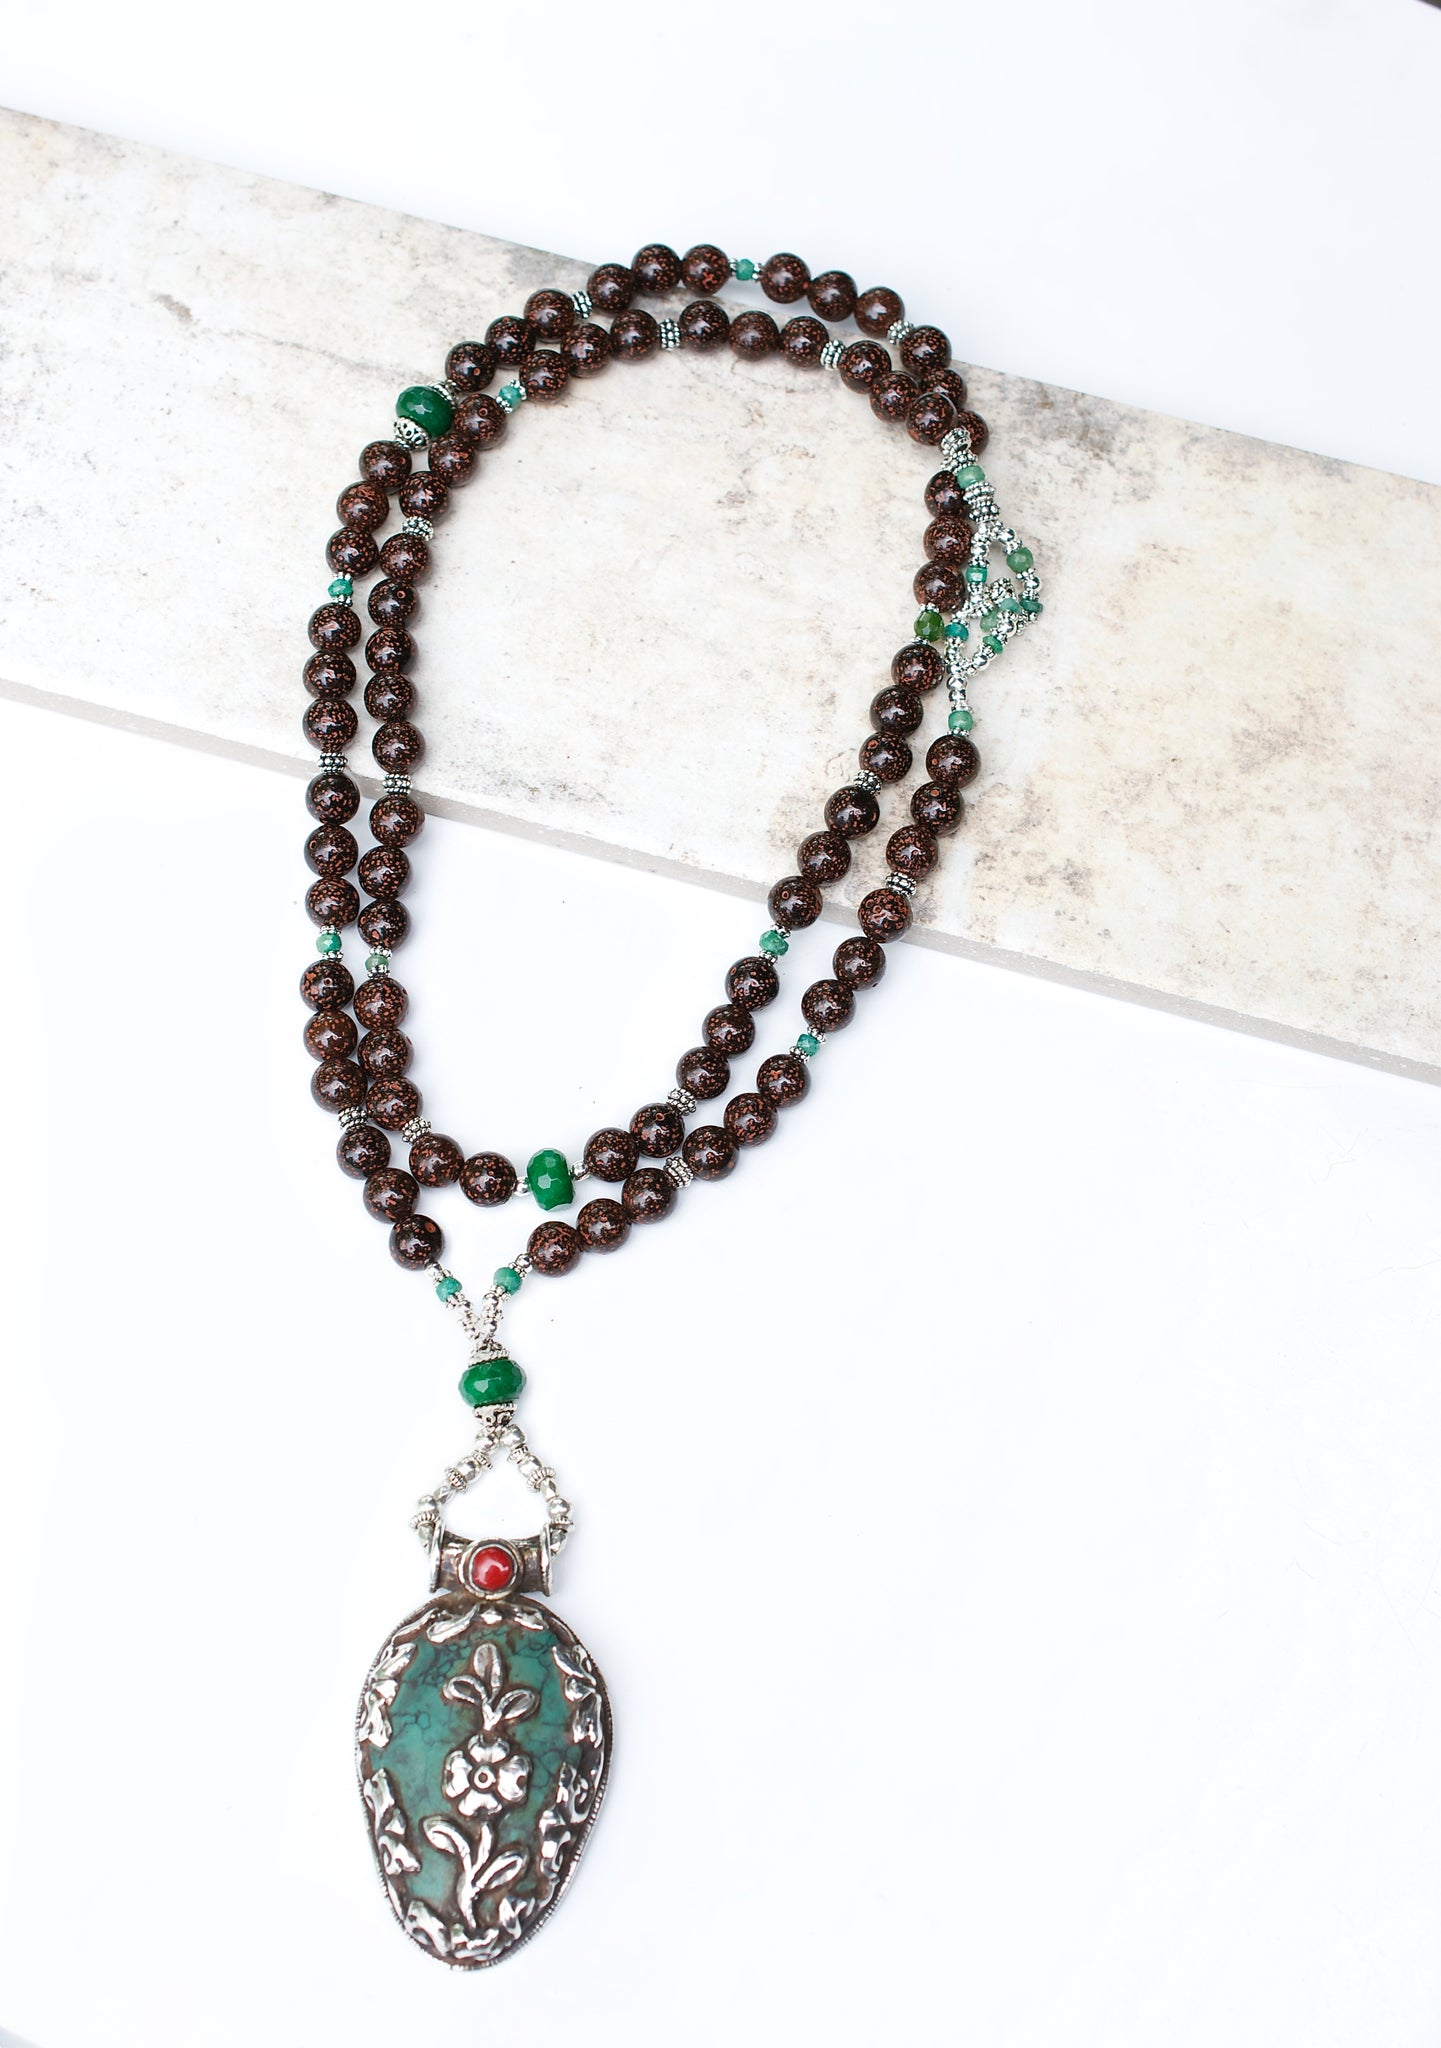 Emerald and Turquoise Mala Necklace